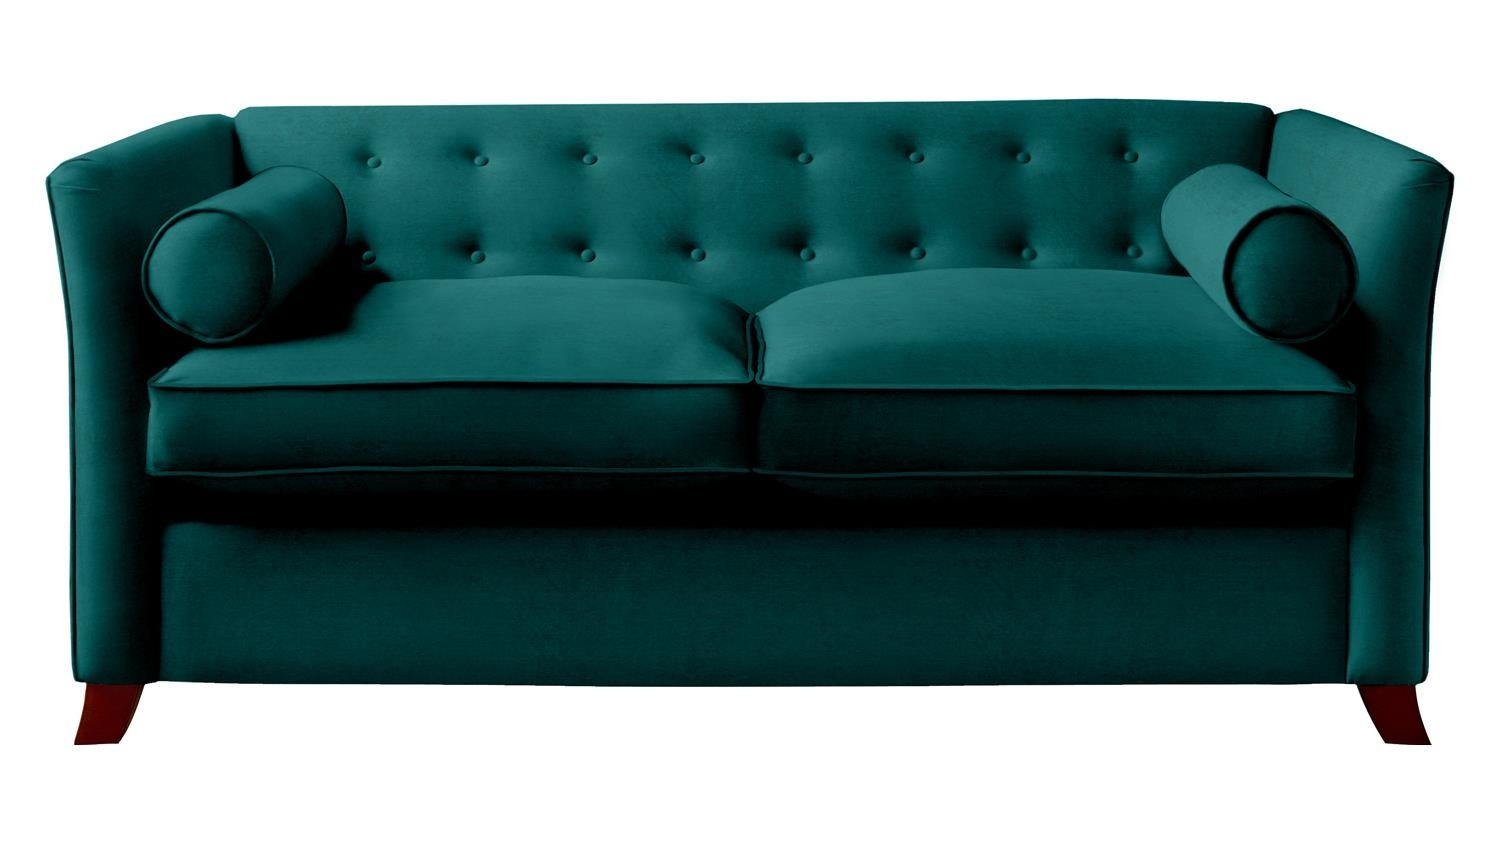 The Gastard 3 Seater Sofa Bed